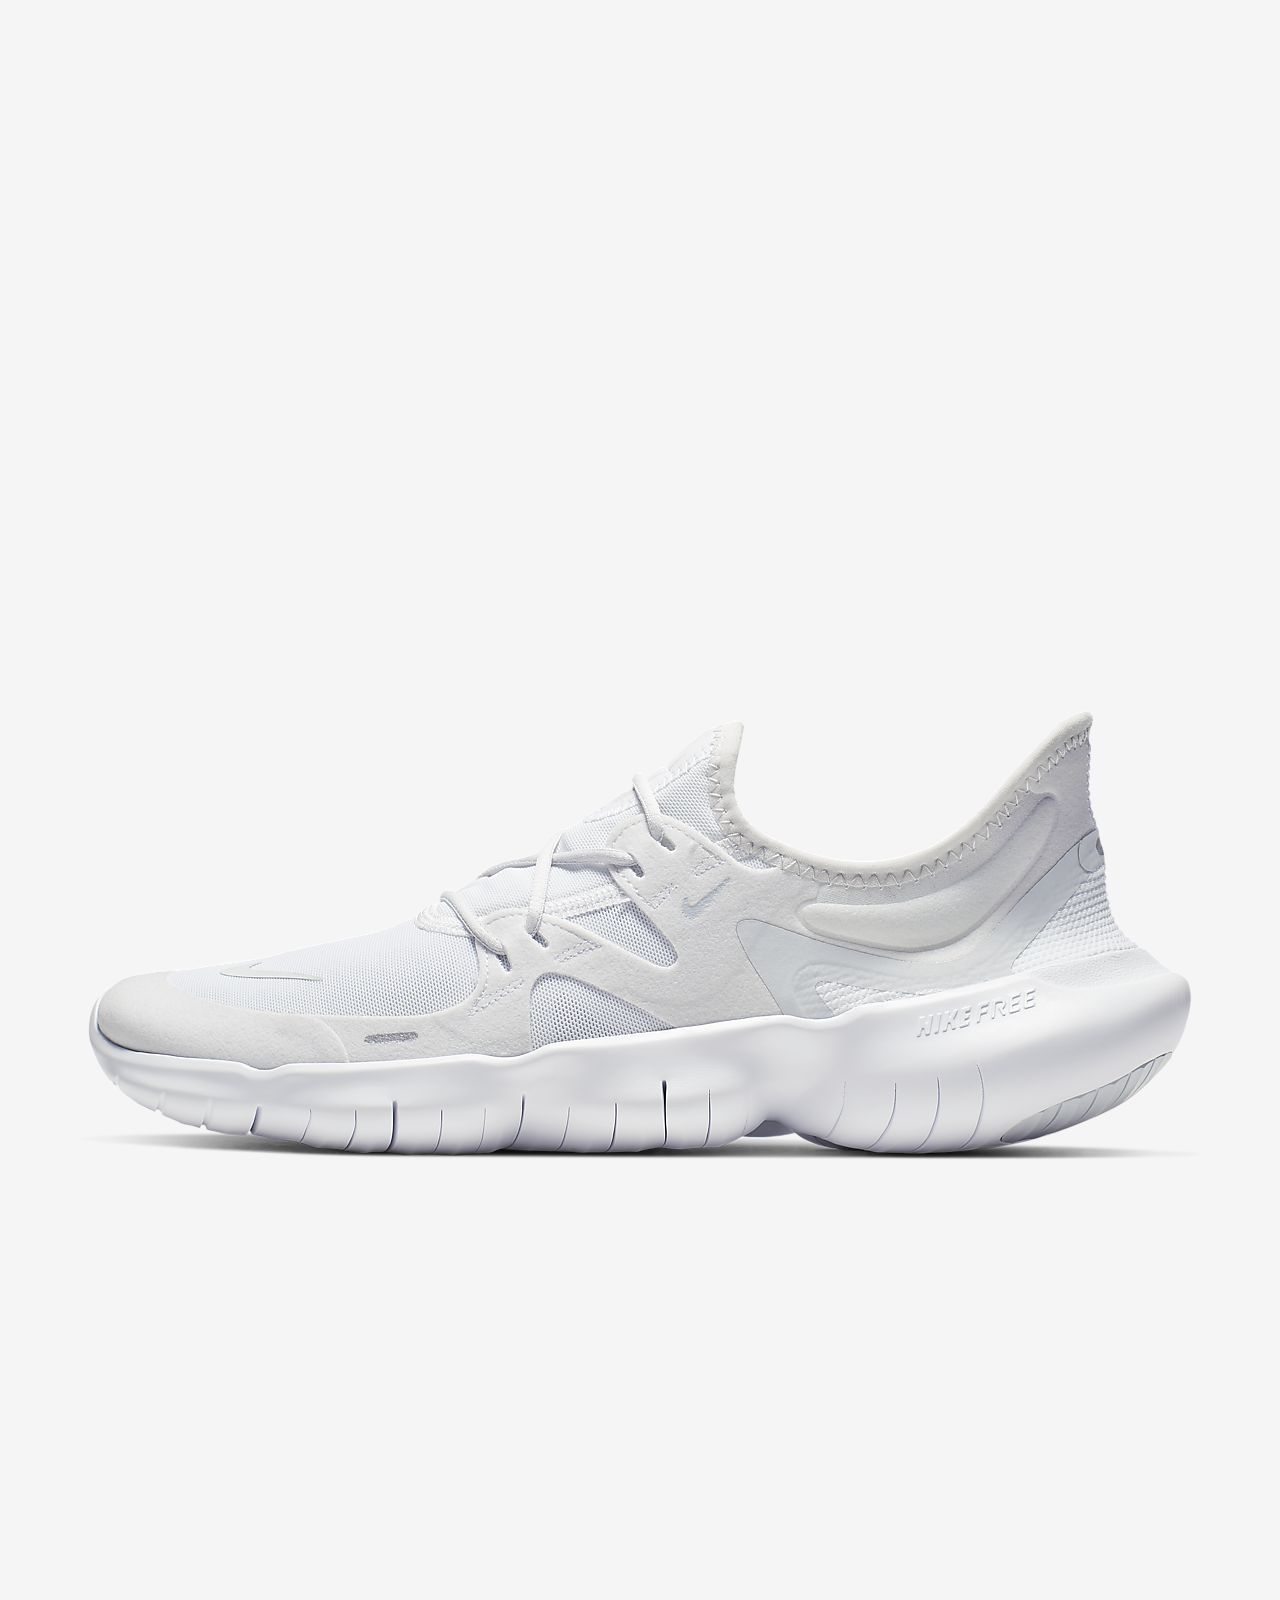 01c51506d Nike Free RN 5.0 Men s Running Shoe. Nike.com BE